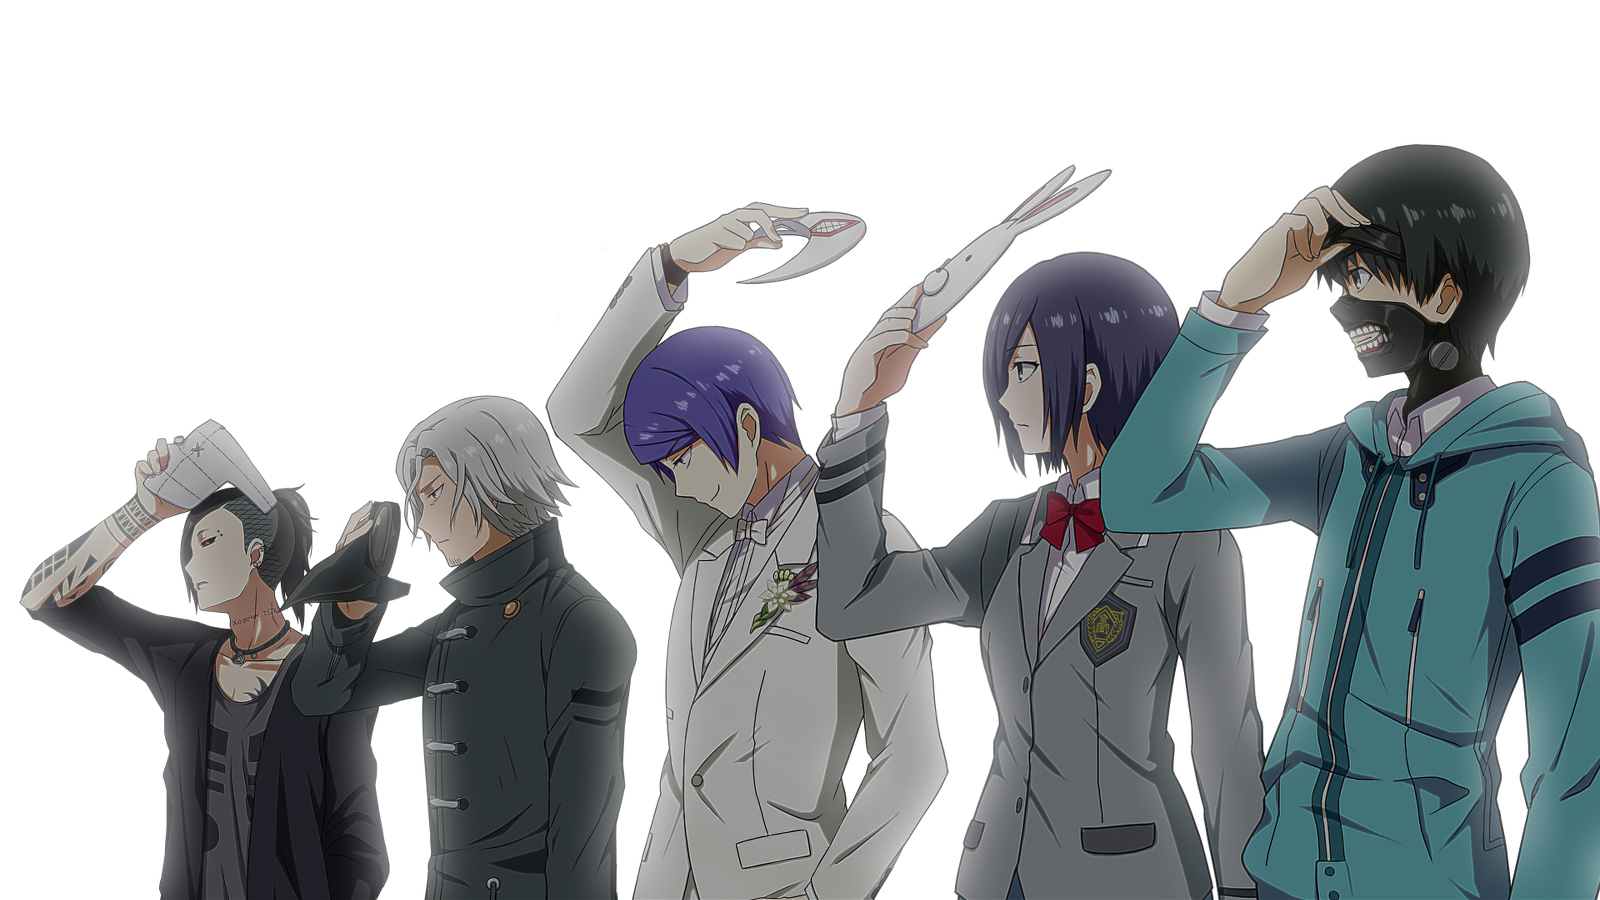 31 Days Of Horror Tokyo Ghoul Season 1 Another Castle